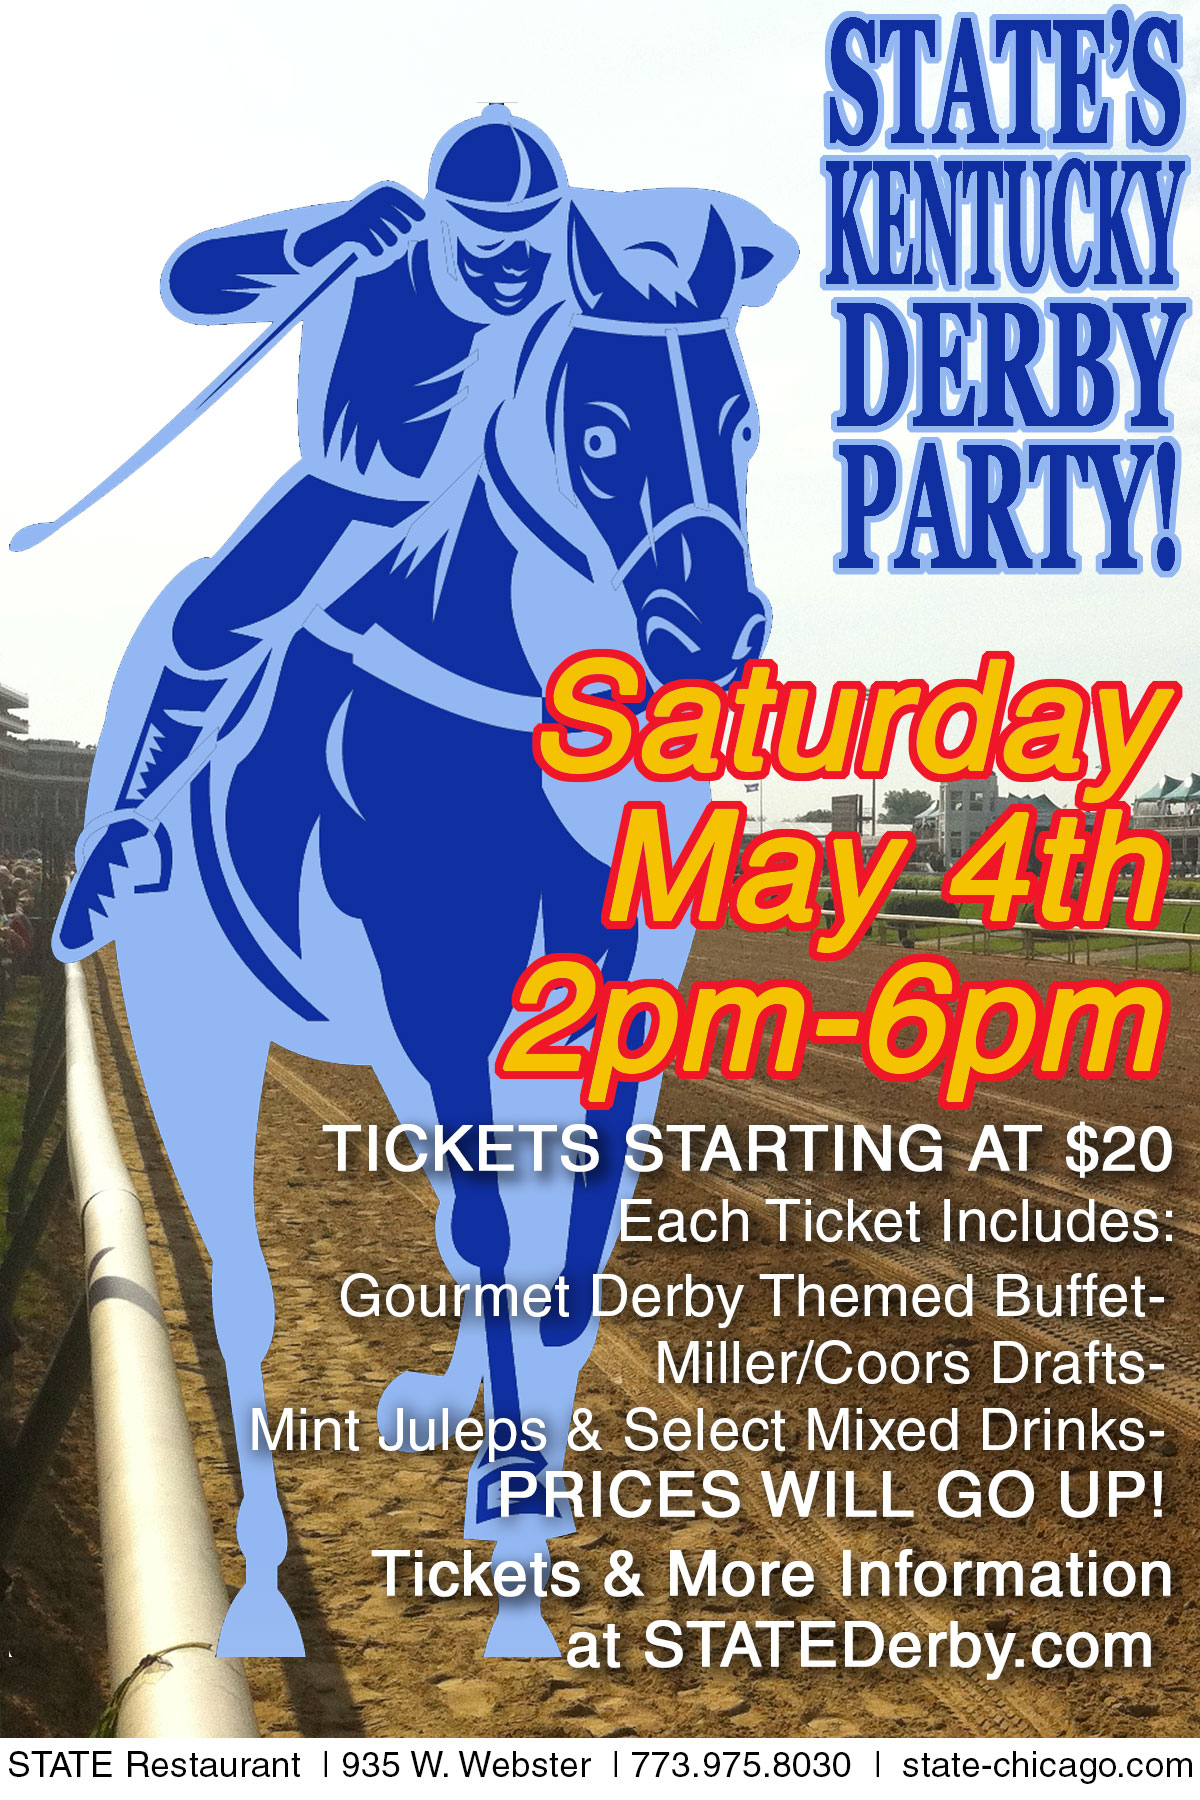 State Restaurant Kentucky Derby Party - Each Ticket Includes: Gourmet Derby Themed Buffet, Miller/Coors Drafts, Mint Juleps & Select Mixed Drinks!